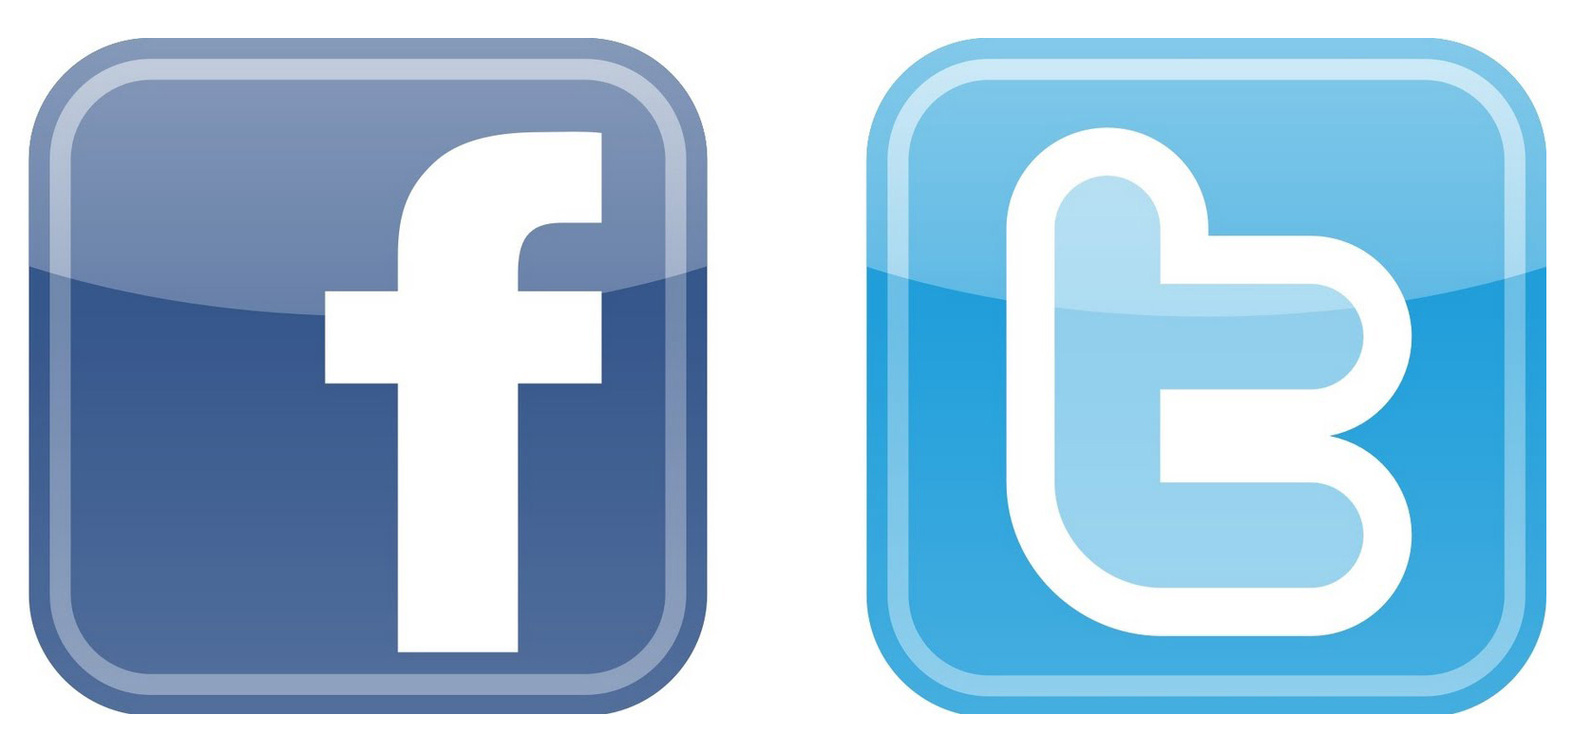 1573x752 Facebook Clip Art Google Search Find Us Contact Us Like Us